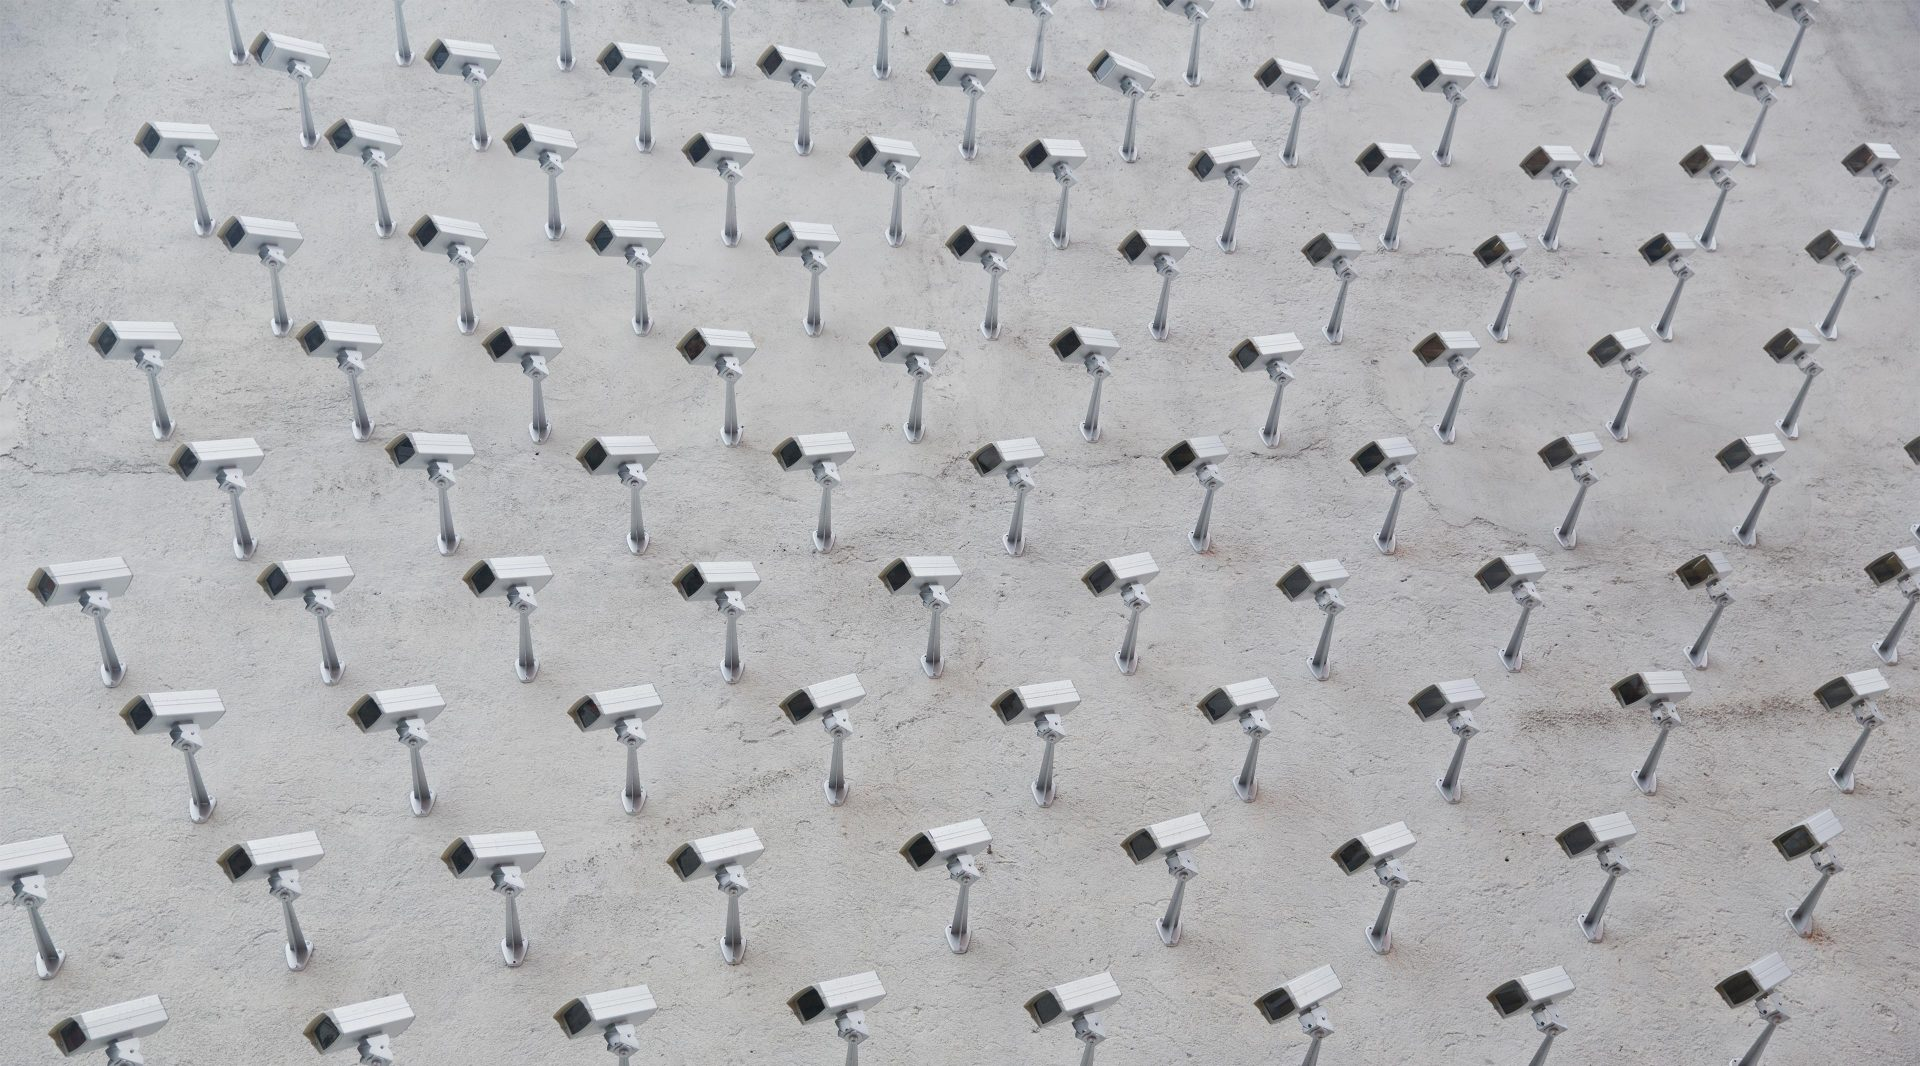 cameras, madrid, urban art, Street art, public art, big letters, street artist, urban artist, art festival, art intervention art city, art installation, street art festival, big brother, surveillance camera, cctv, big brother is watching you,